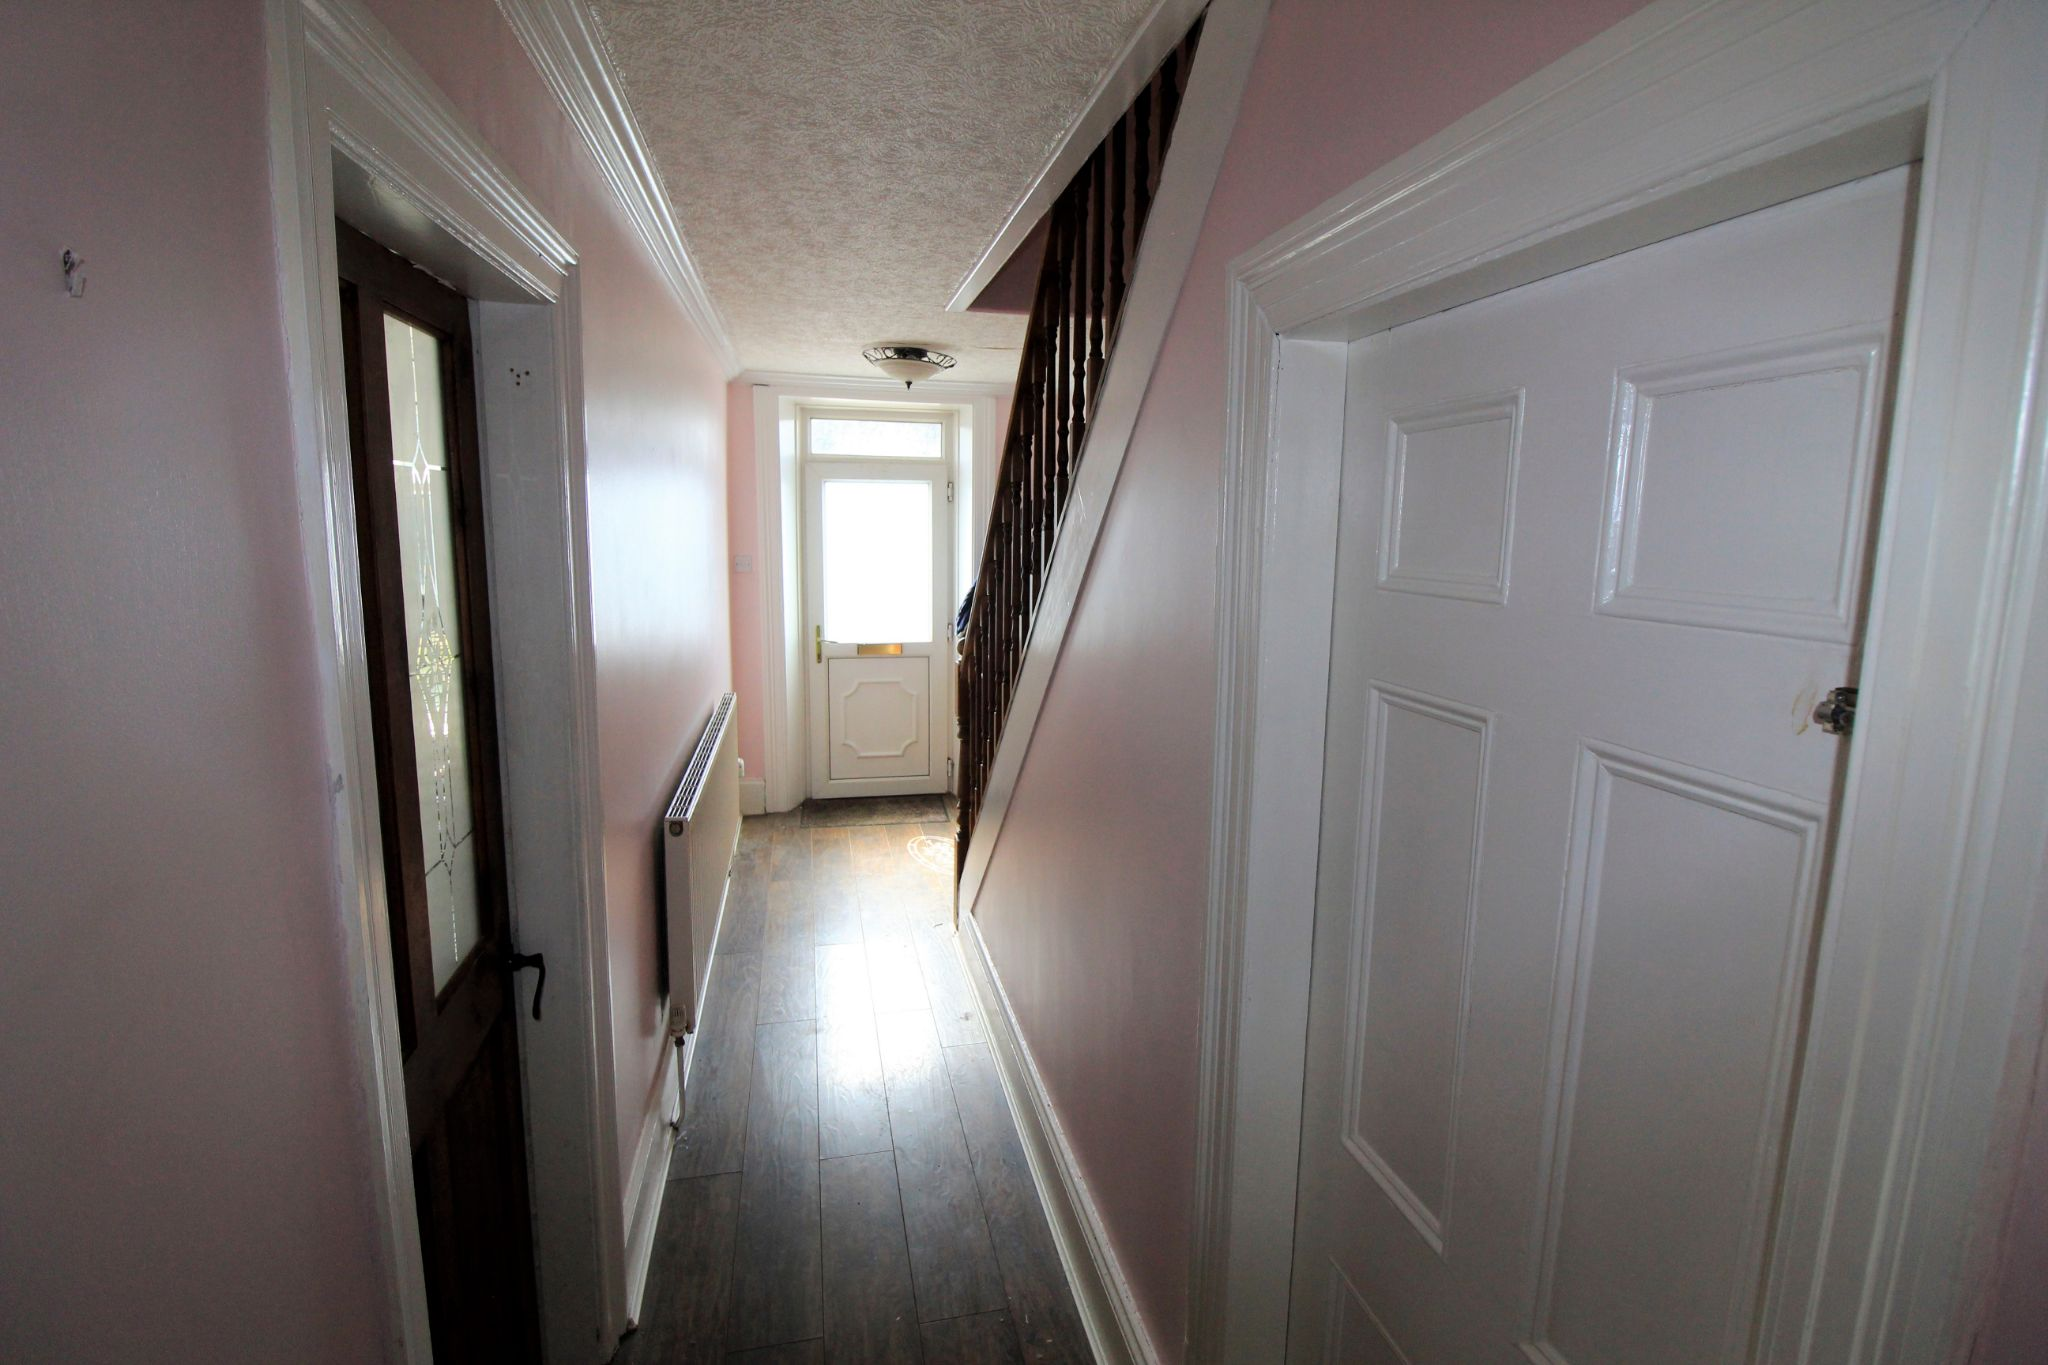 3 bedroom mid terraced house SSTC in Bradford - Entrance hall